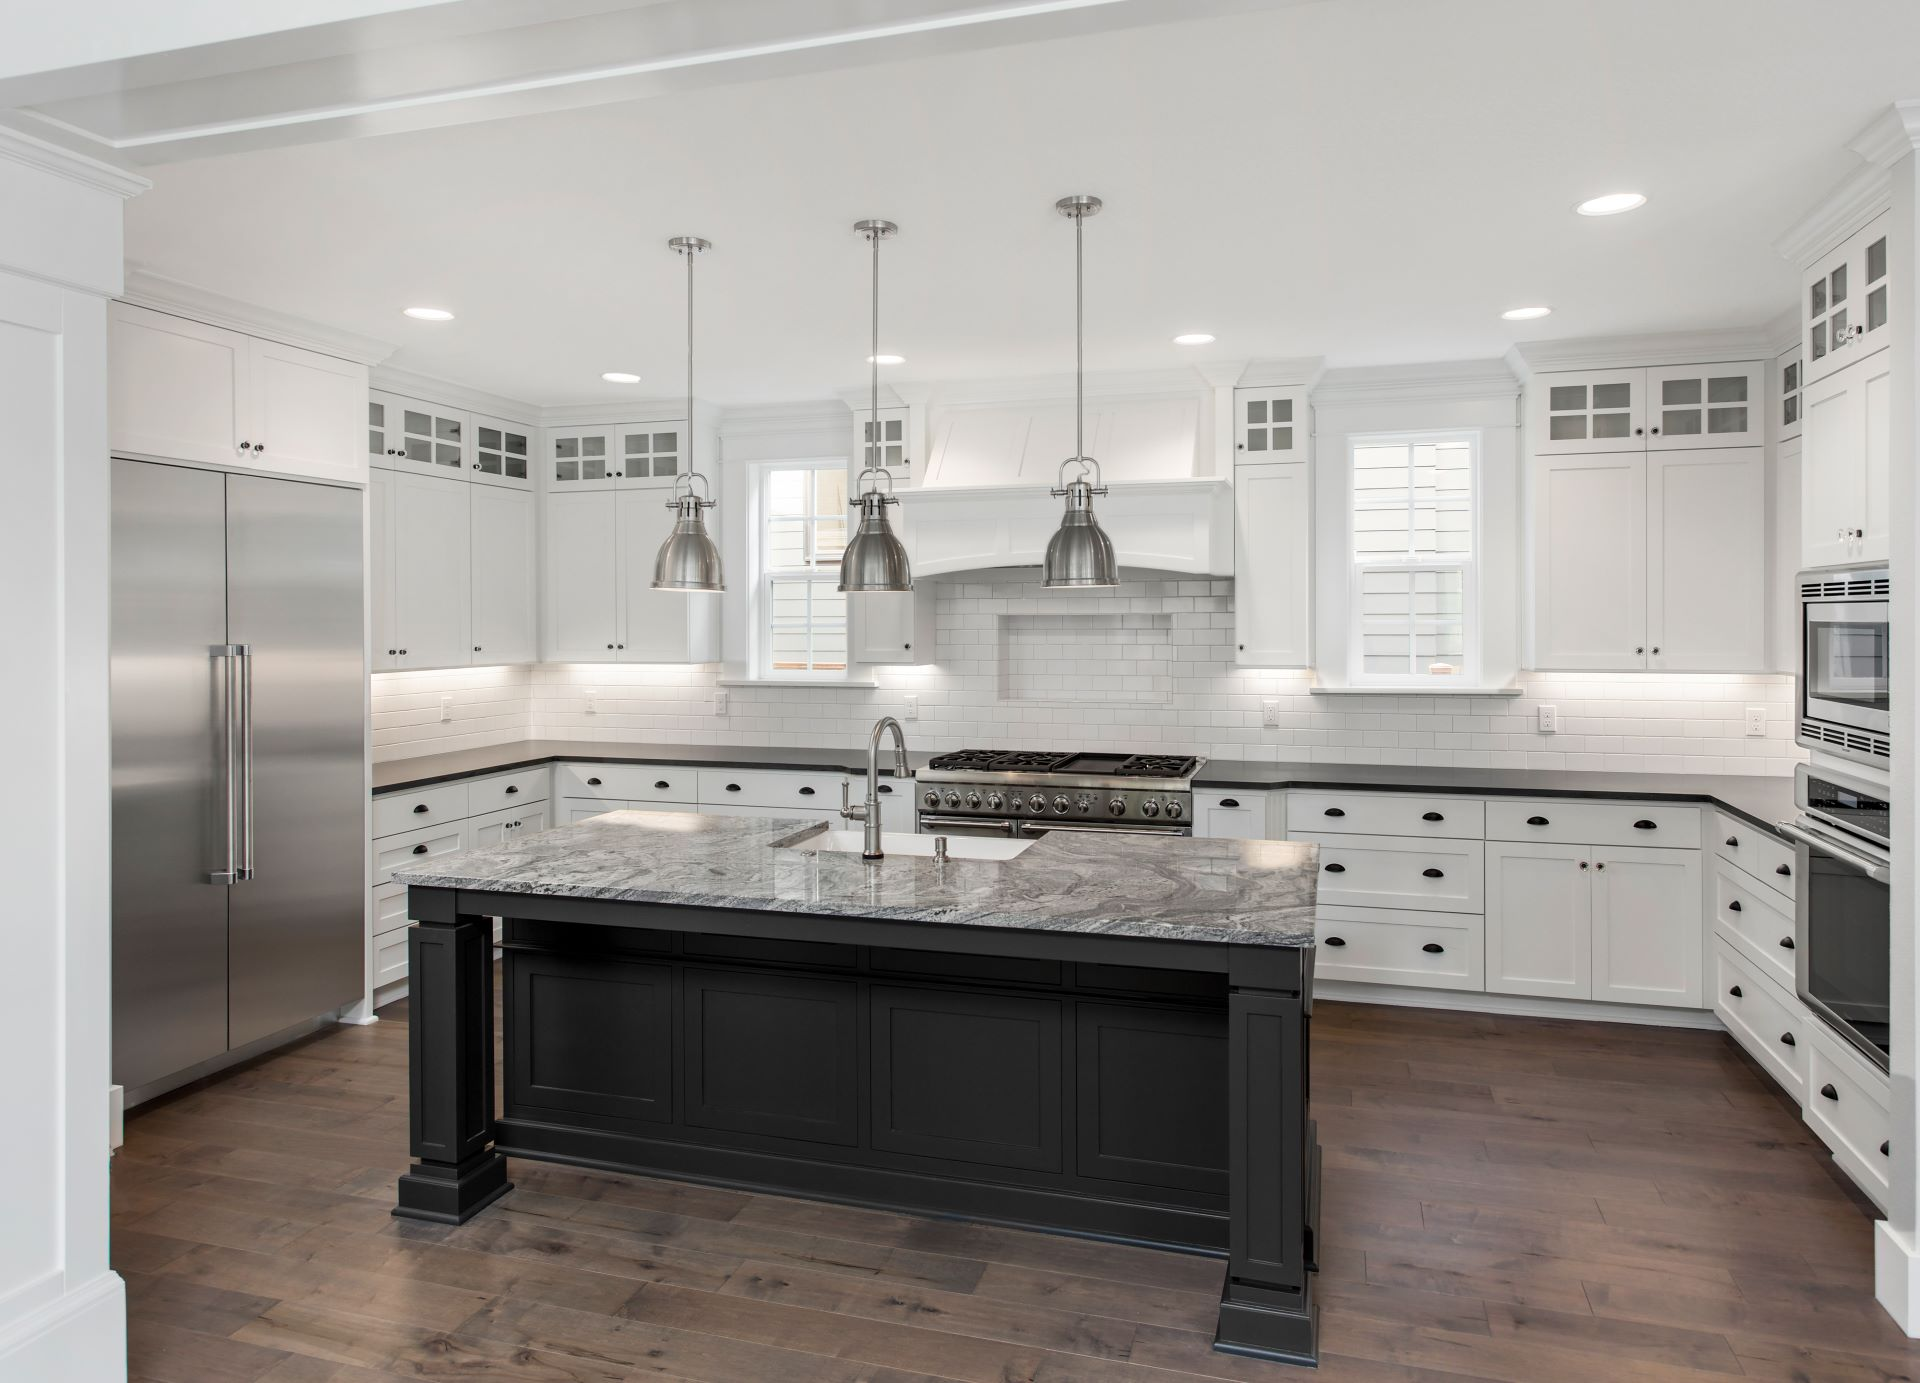 Kitchen Cabinet Refacing Ideas To Sell Your Home Faster